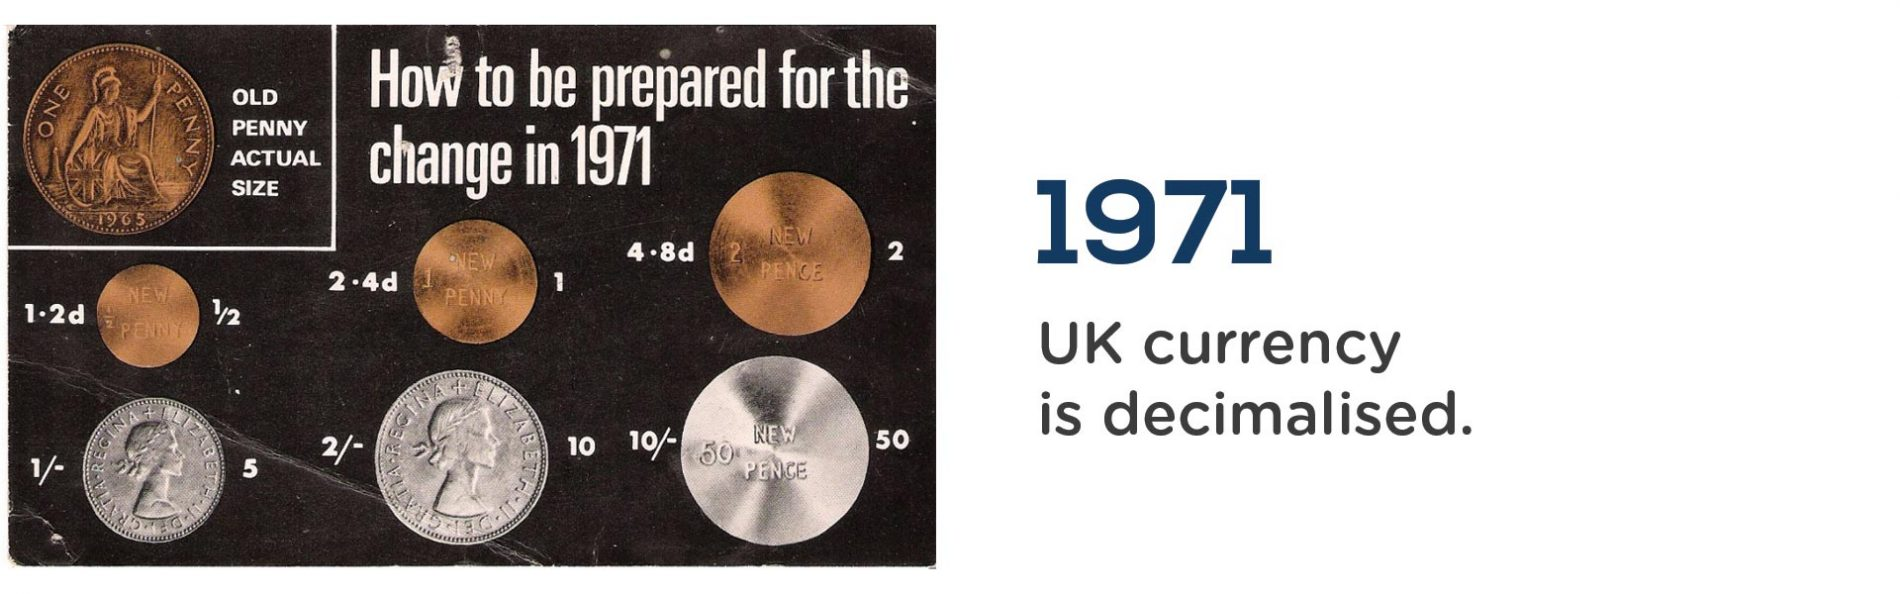 The UK currency was decimalised in 1971. Wrigley Claydon Solicitors, Trusted for 200 years